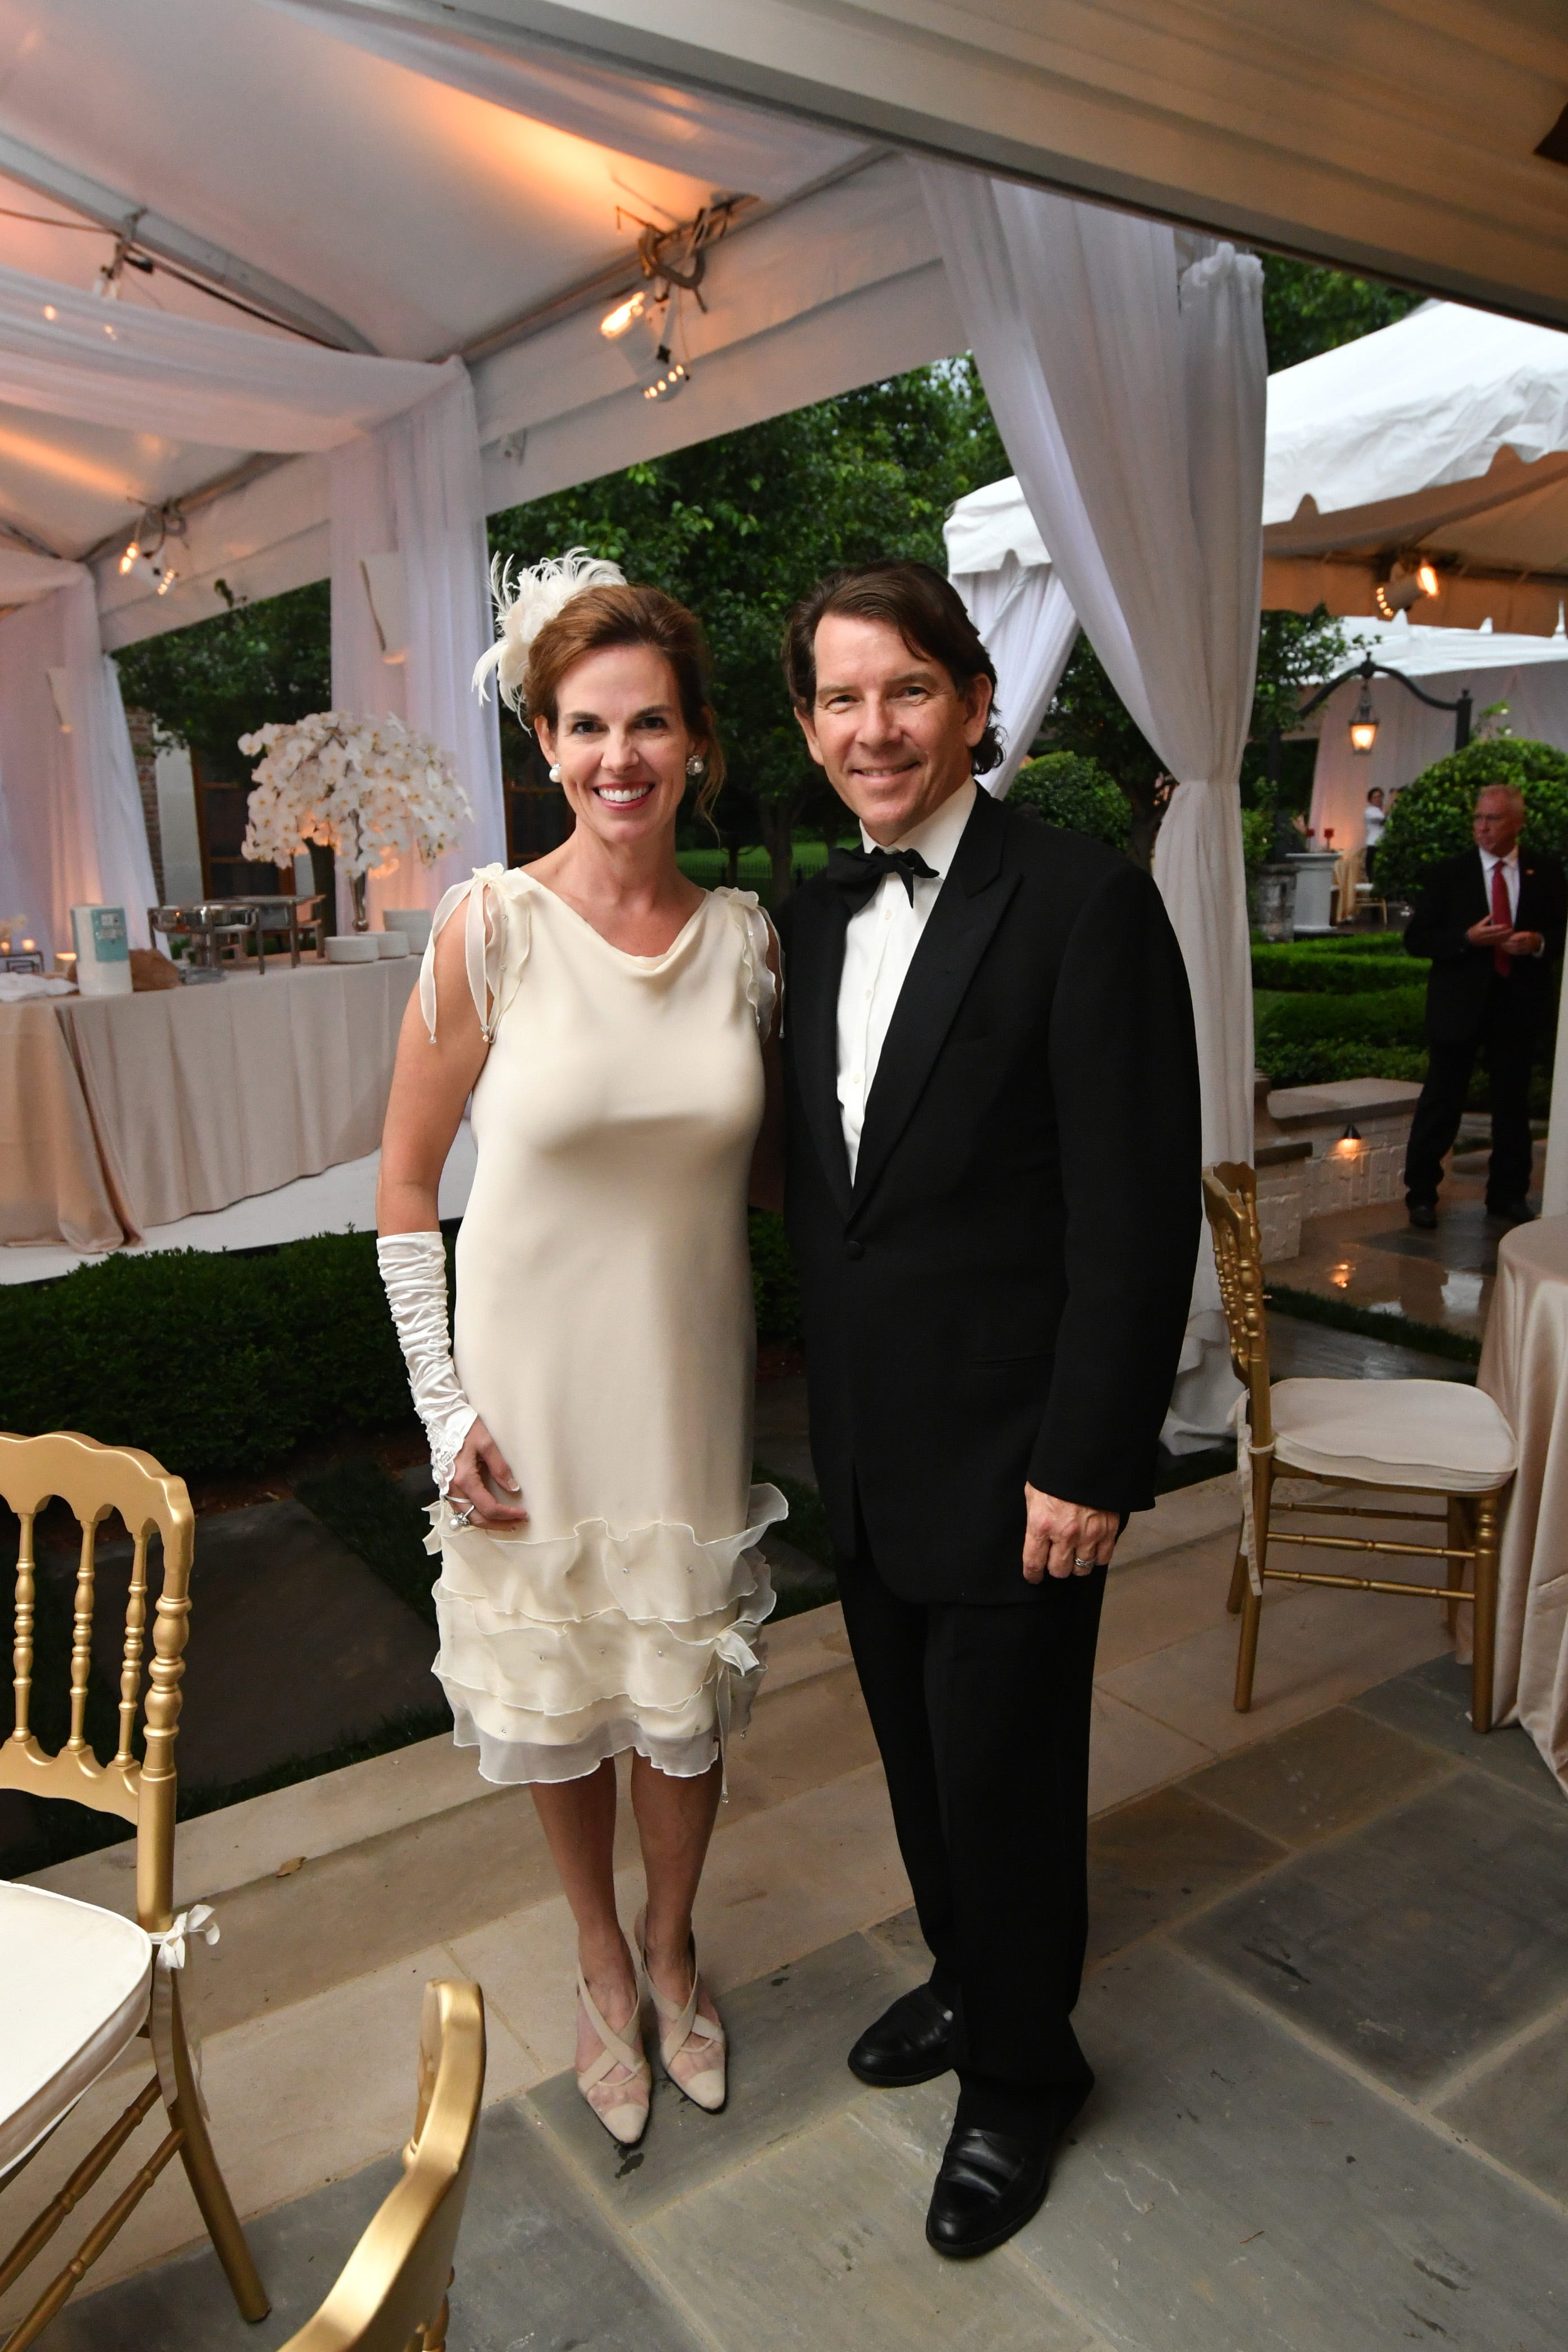 Traci Young Byron Wedding.Http Www Tennessean Com Picture Gallery Entertainment